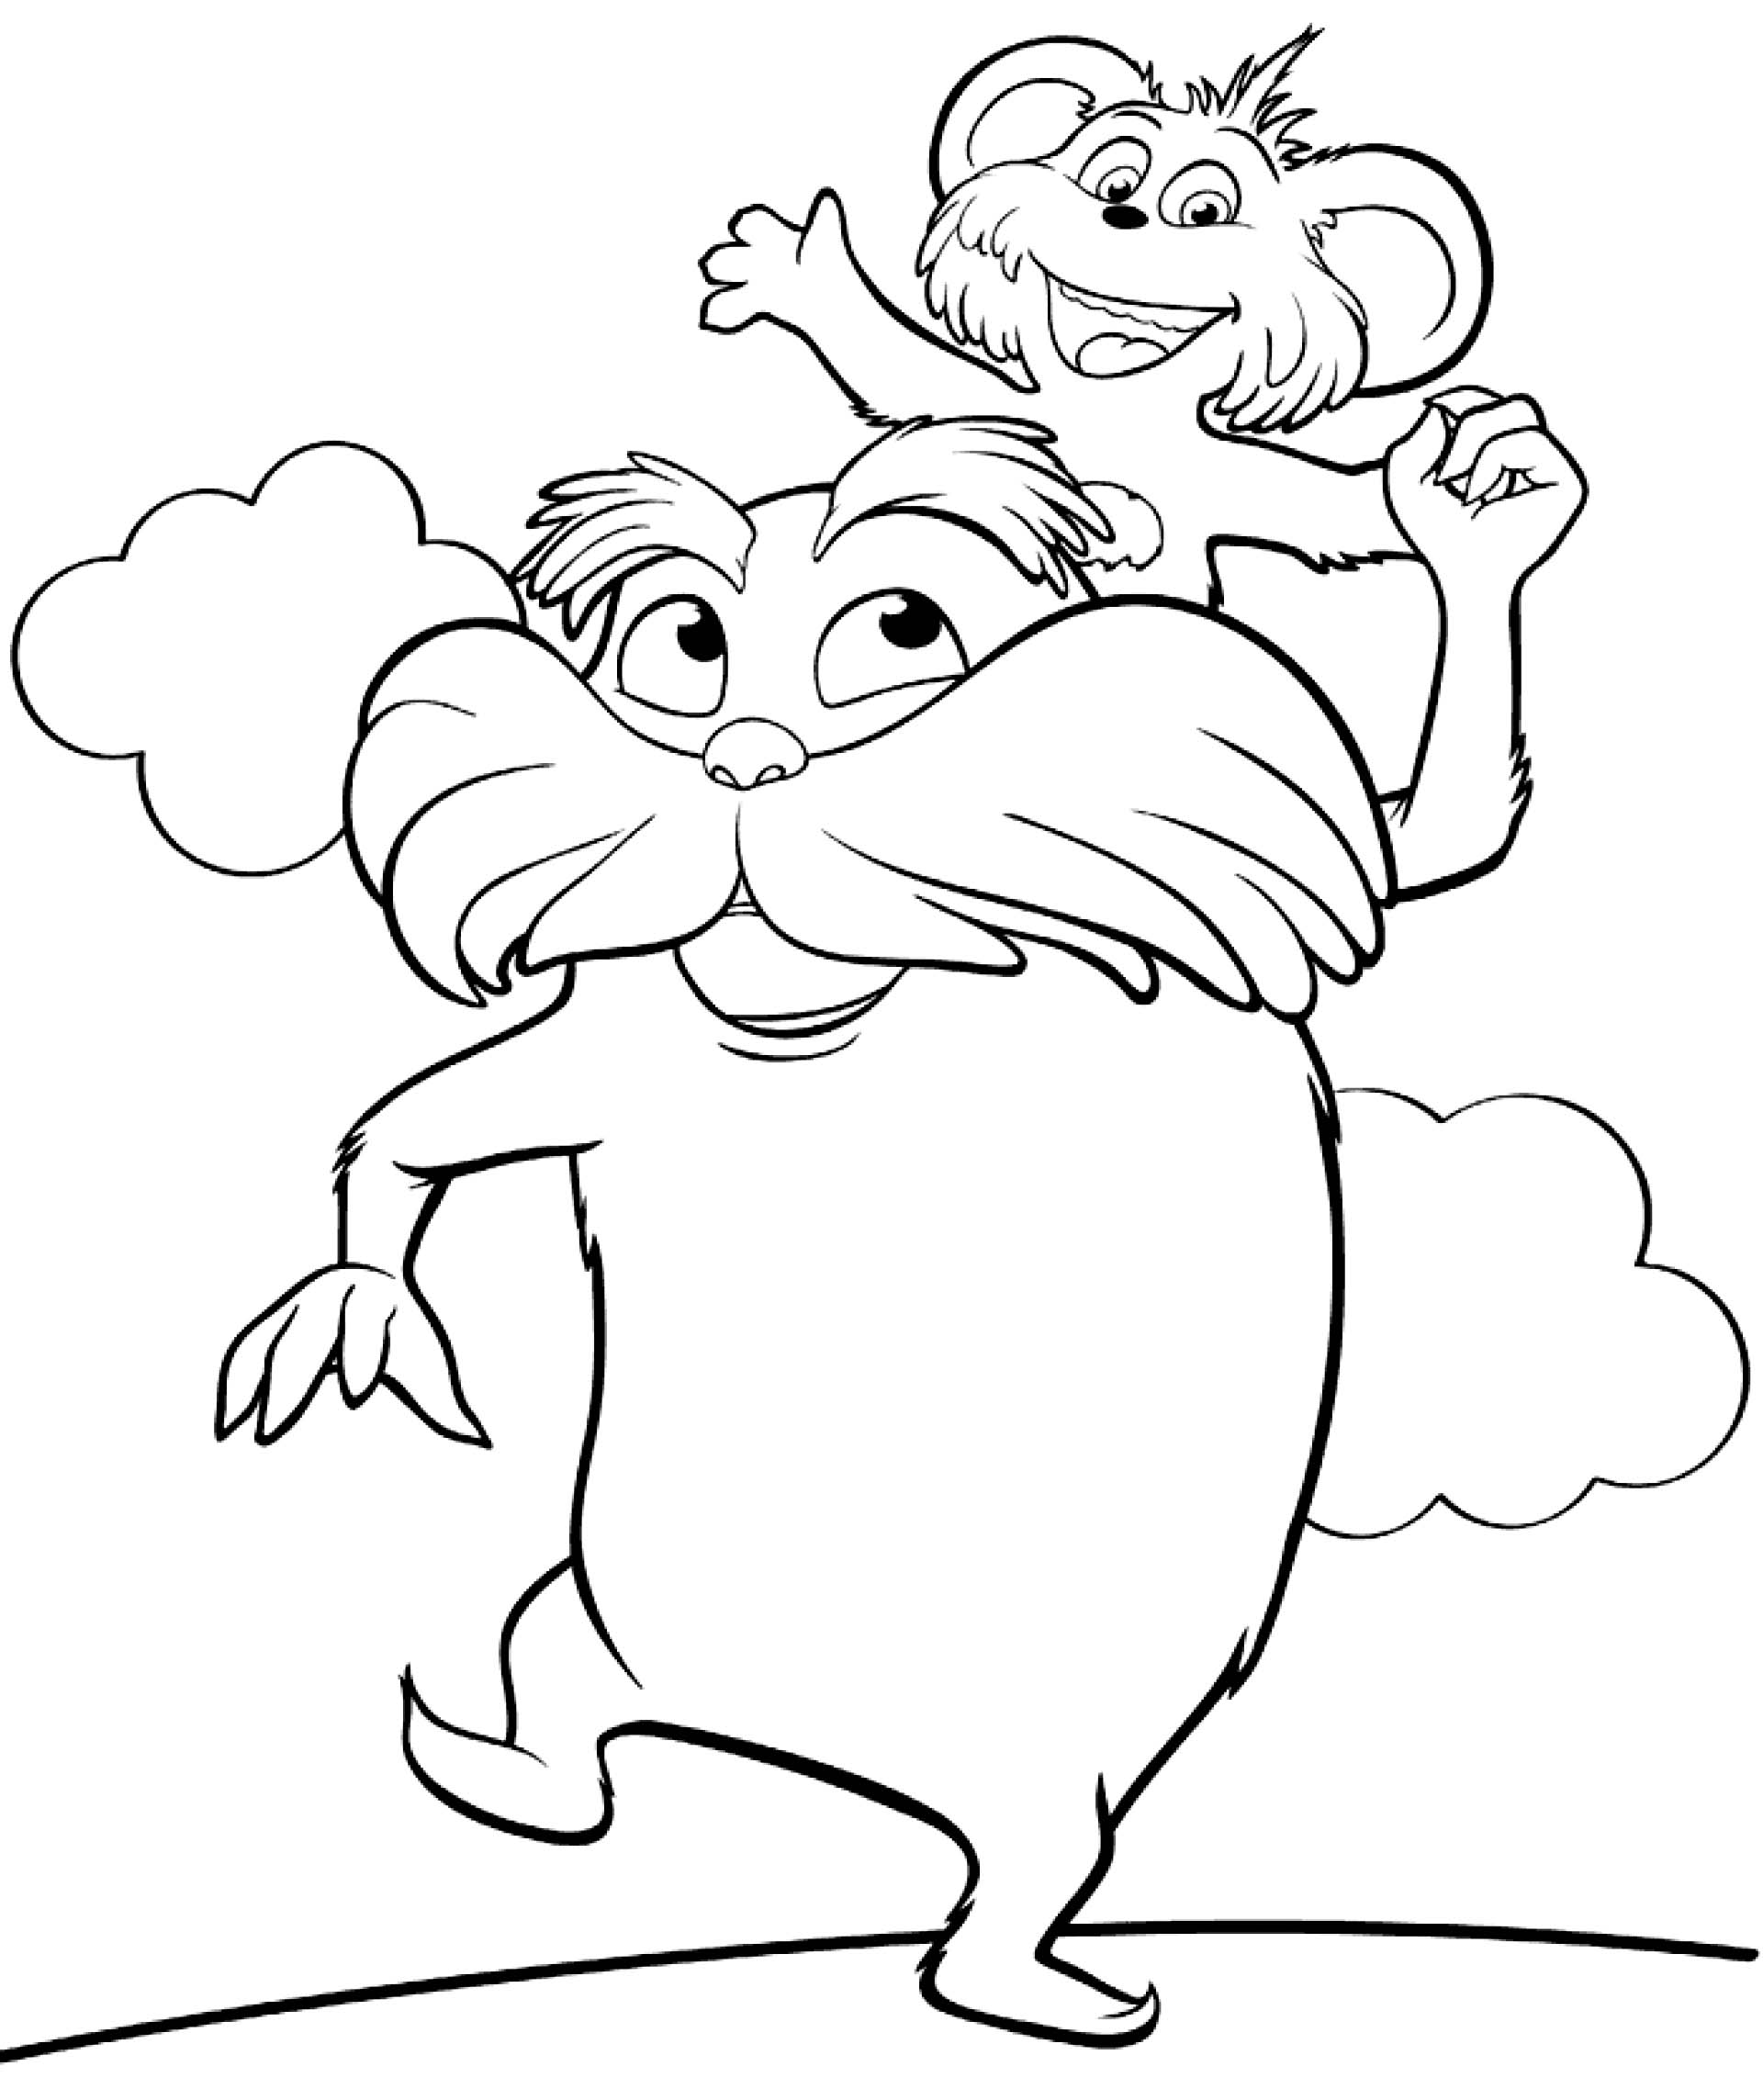 Dr Seuss Horton Hears A Who Sketch Coloring Page